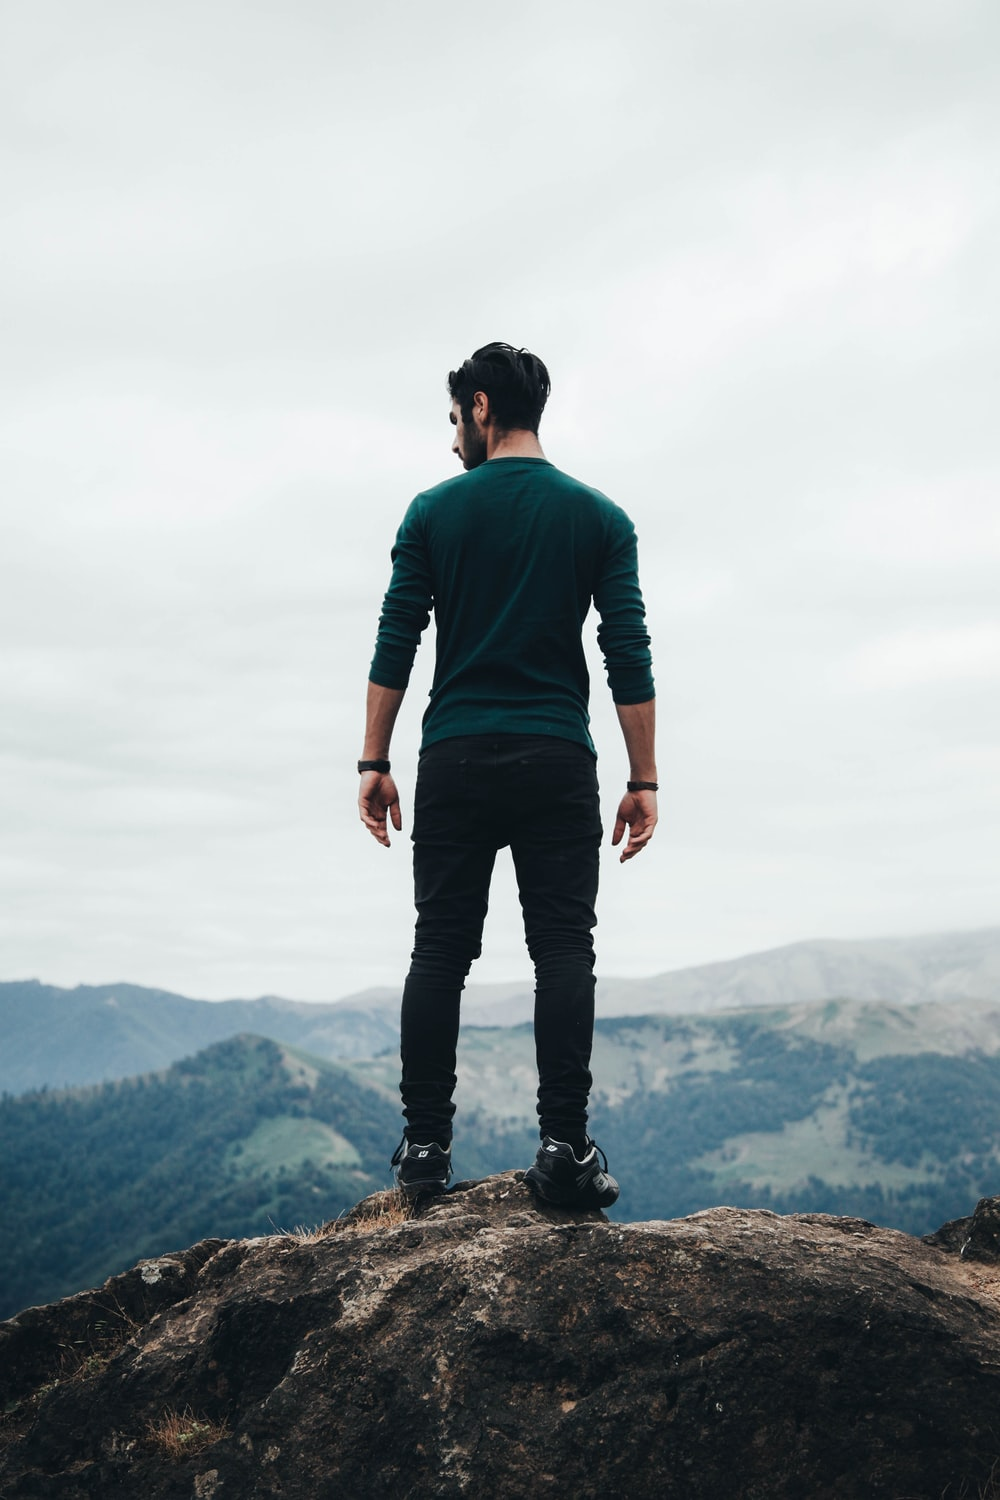 man standing on rock formation